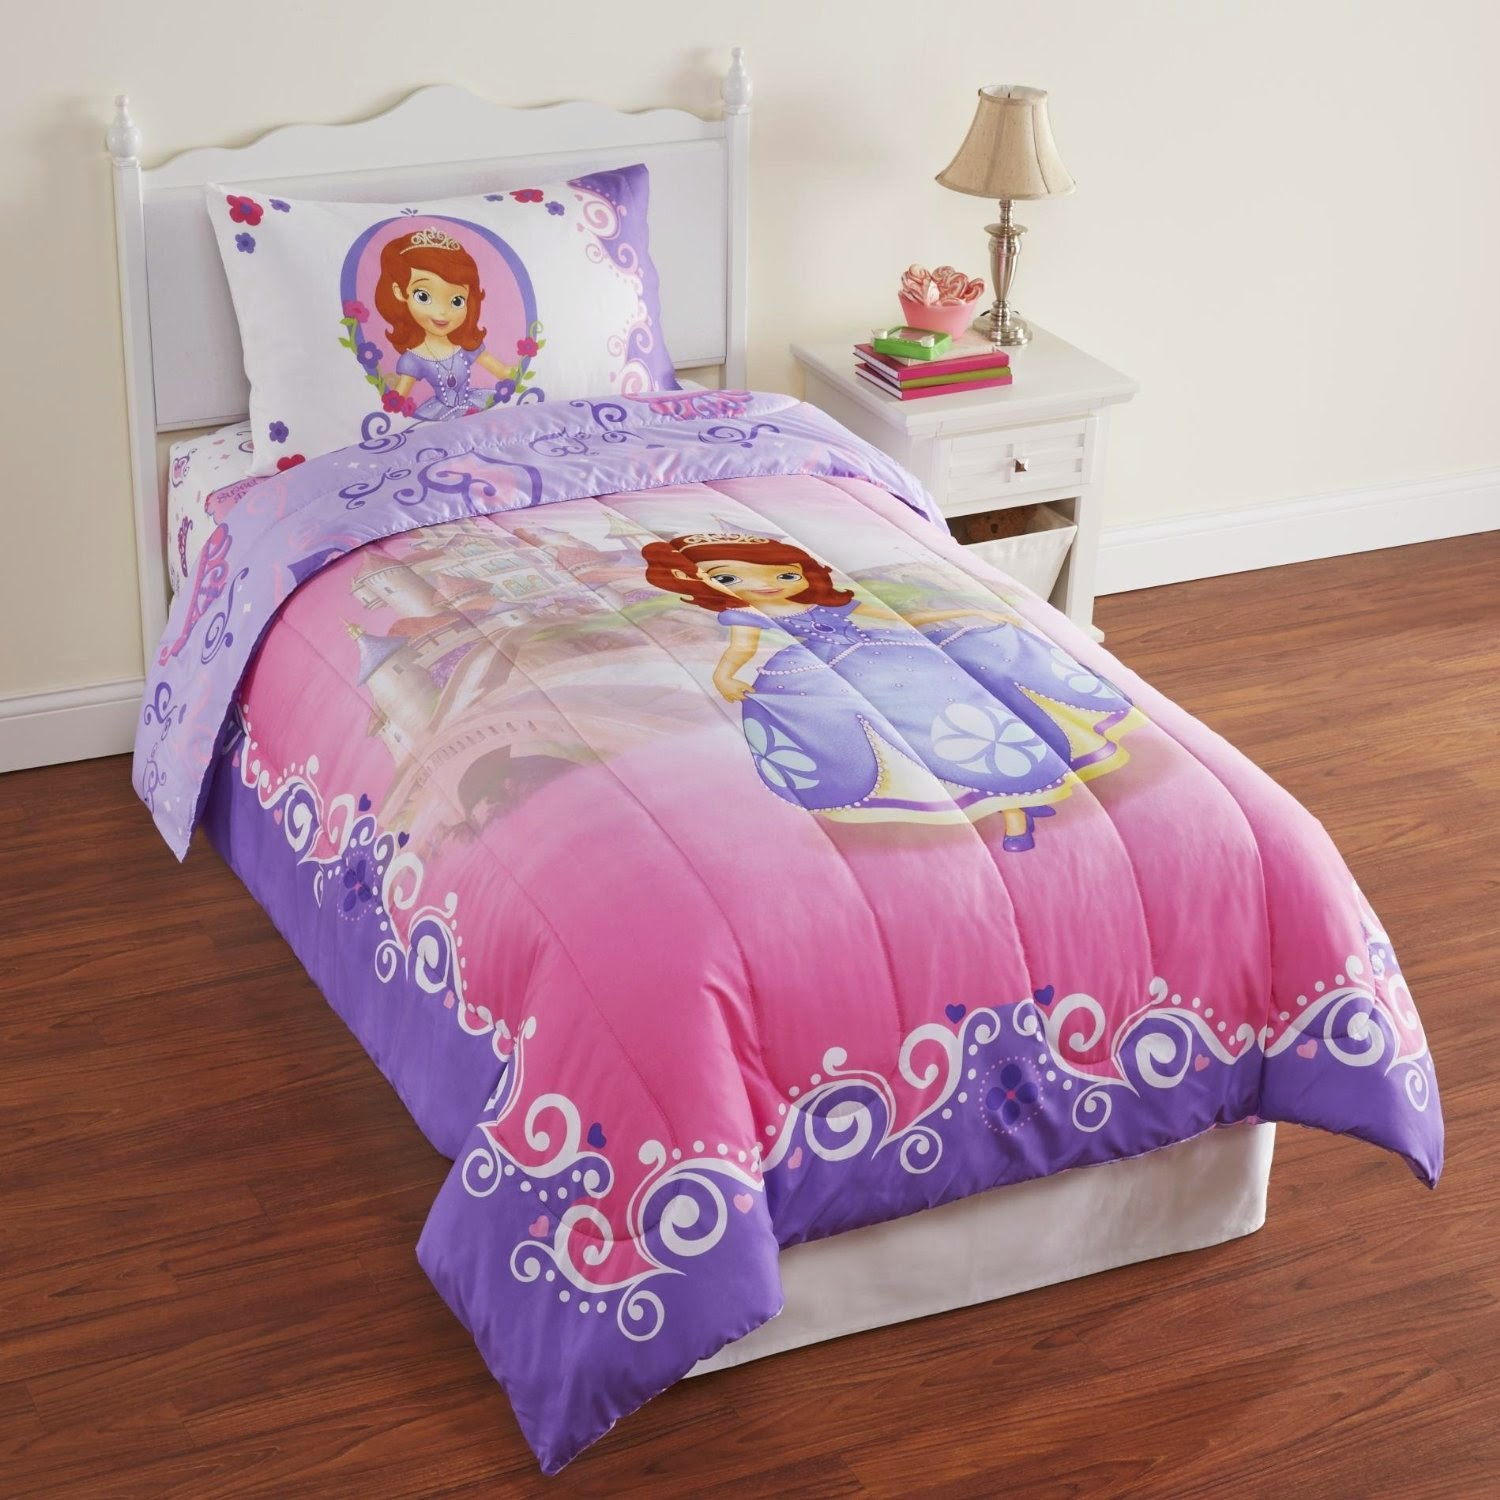 Sofia The First Comforter And Sheets